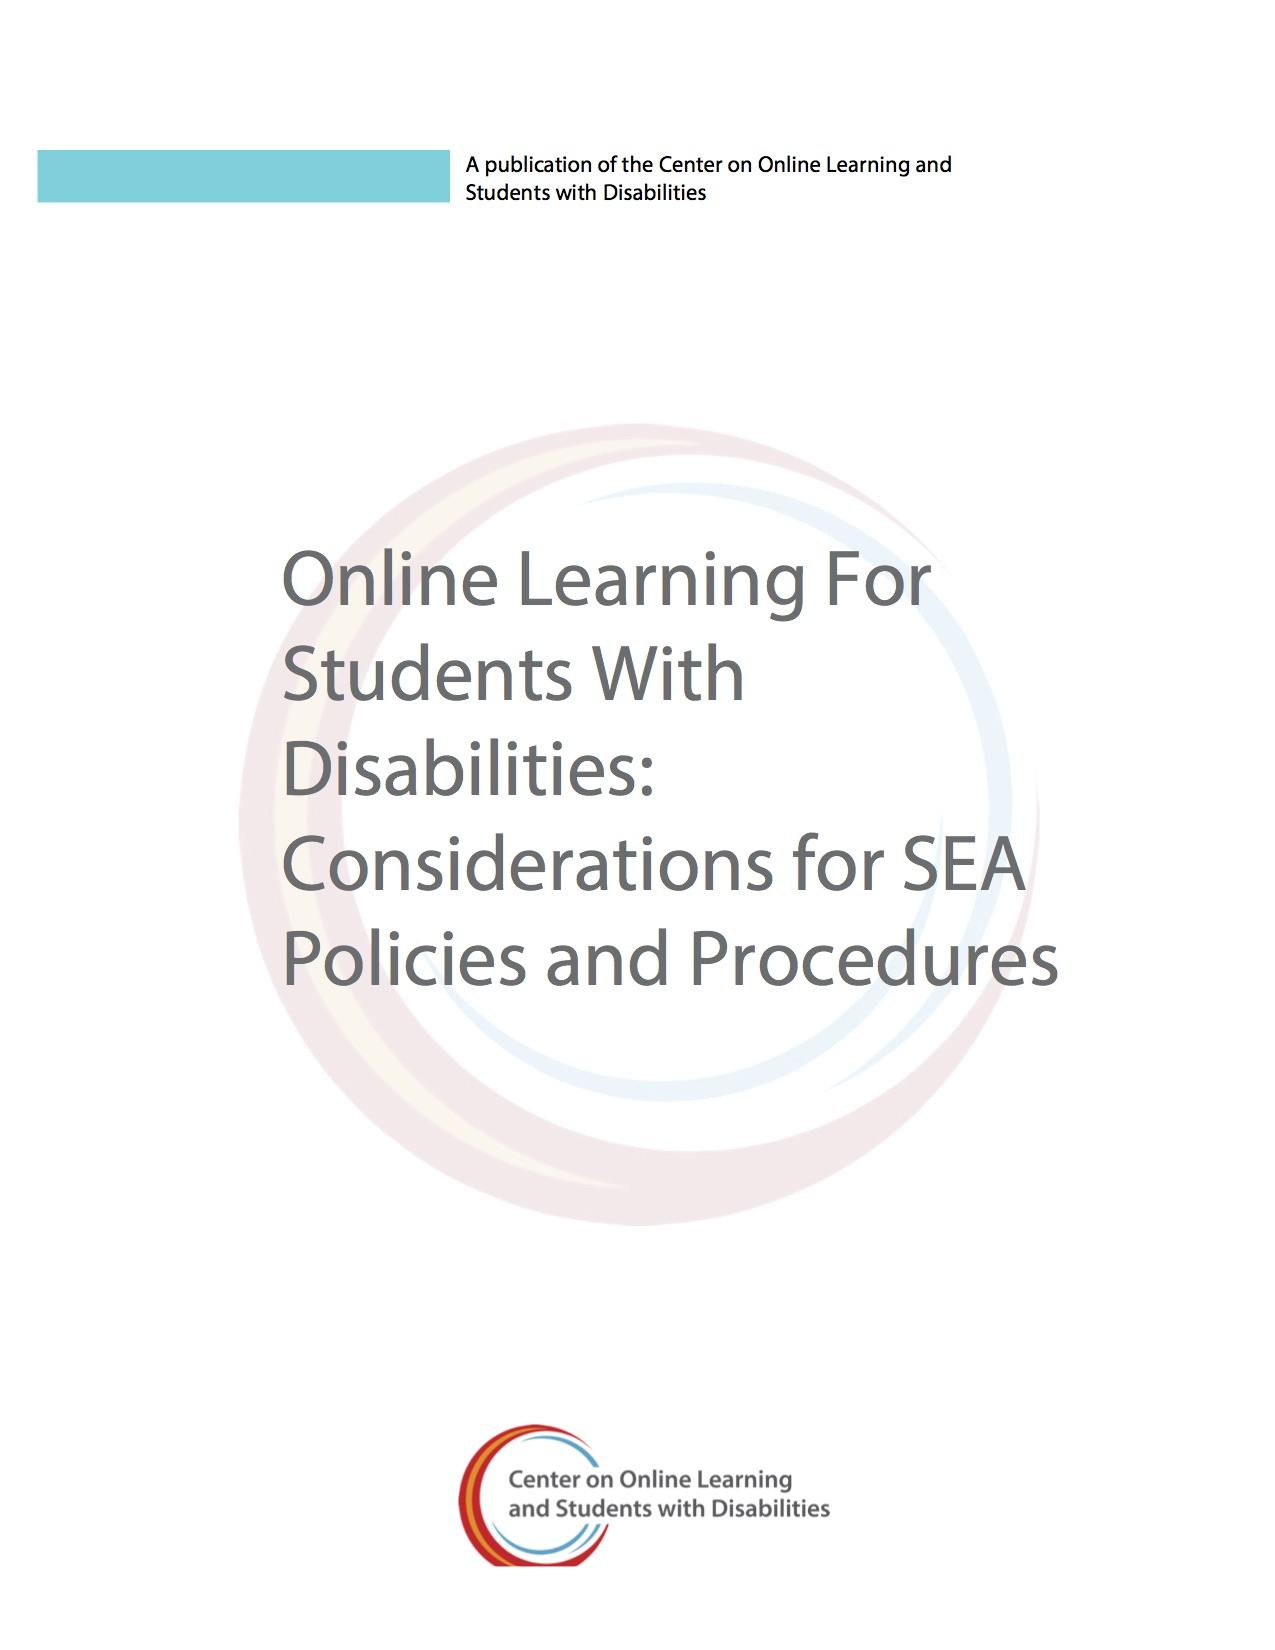 Online Learning For Students With Disabilities: Considerations For SEA Policies And Procedures